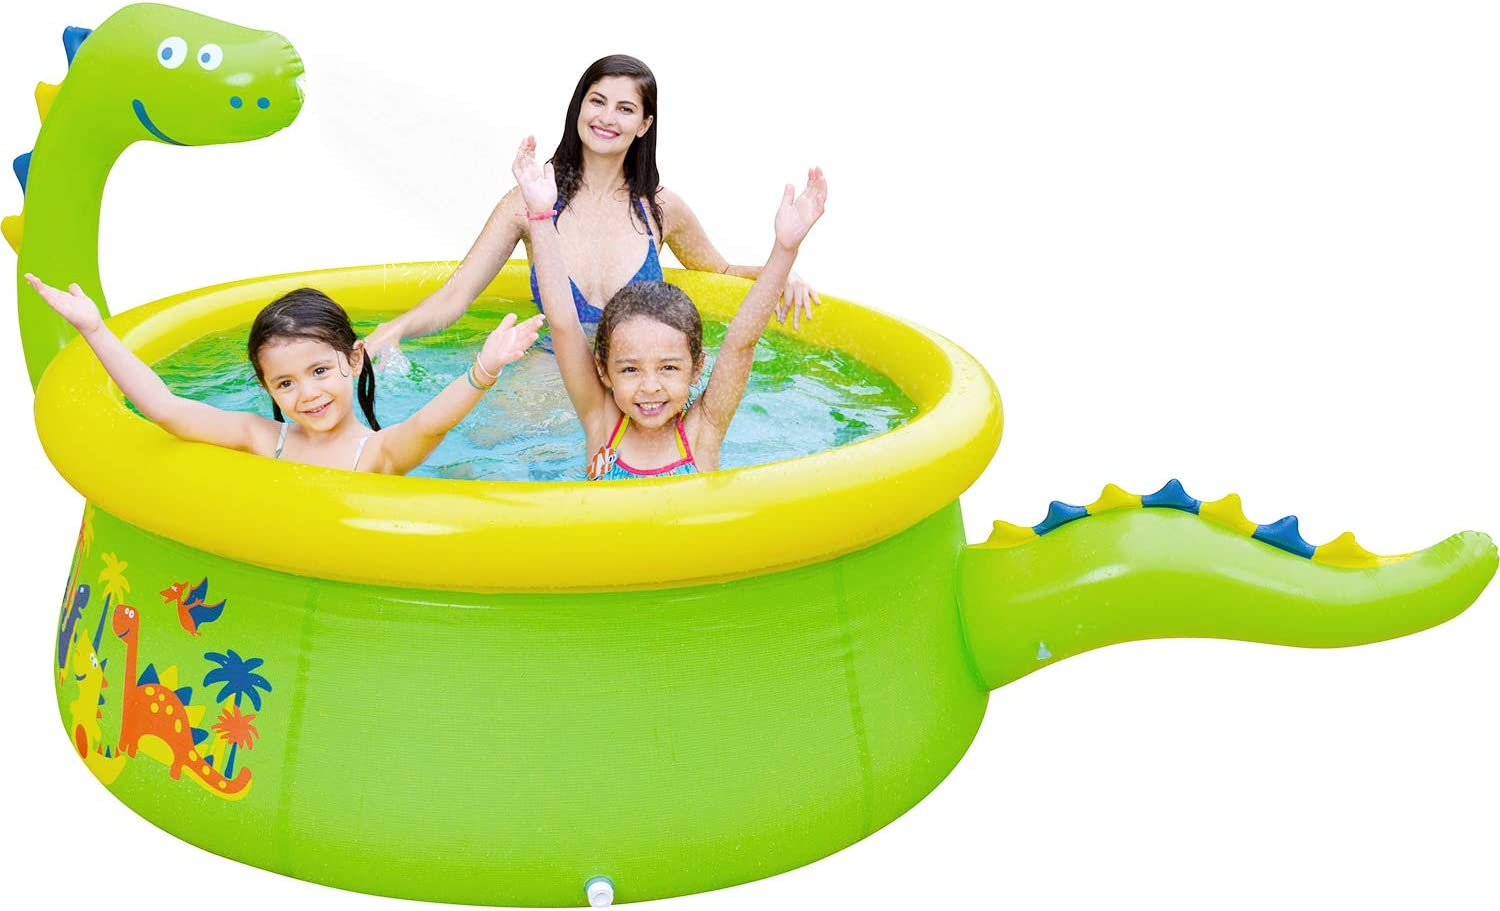 "Lunvon Inflatable Swimming Pool for Kids, Dinosaur Pool Sprinkler Water Toys, Size 70"" X 25"", Kiddie Pool for Age 3+, Upgrade Green: Home & Kitchen"